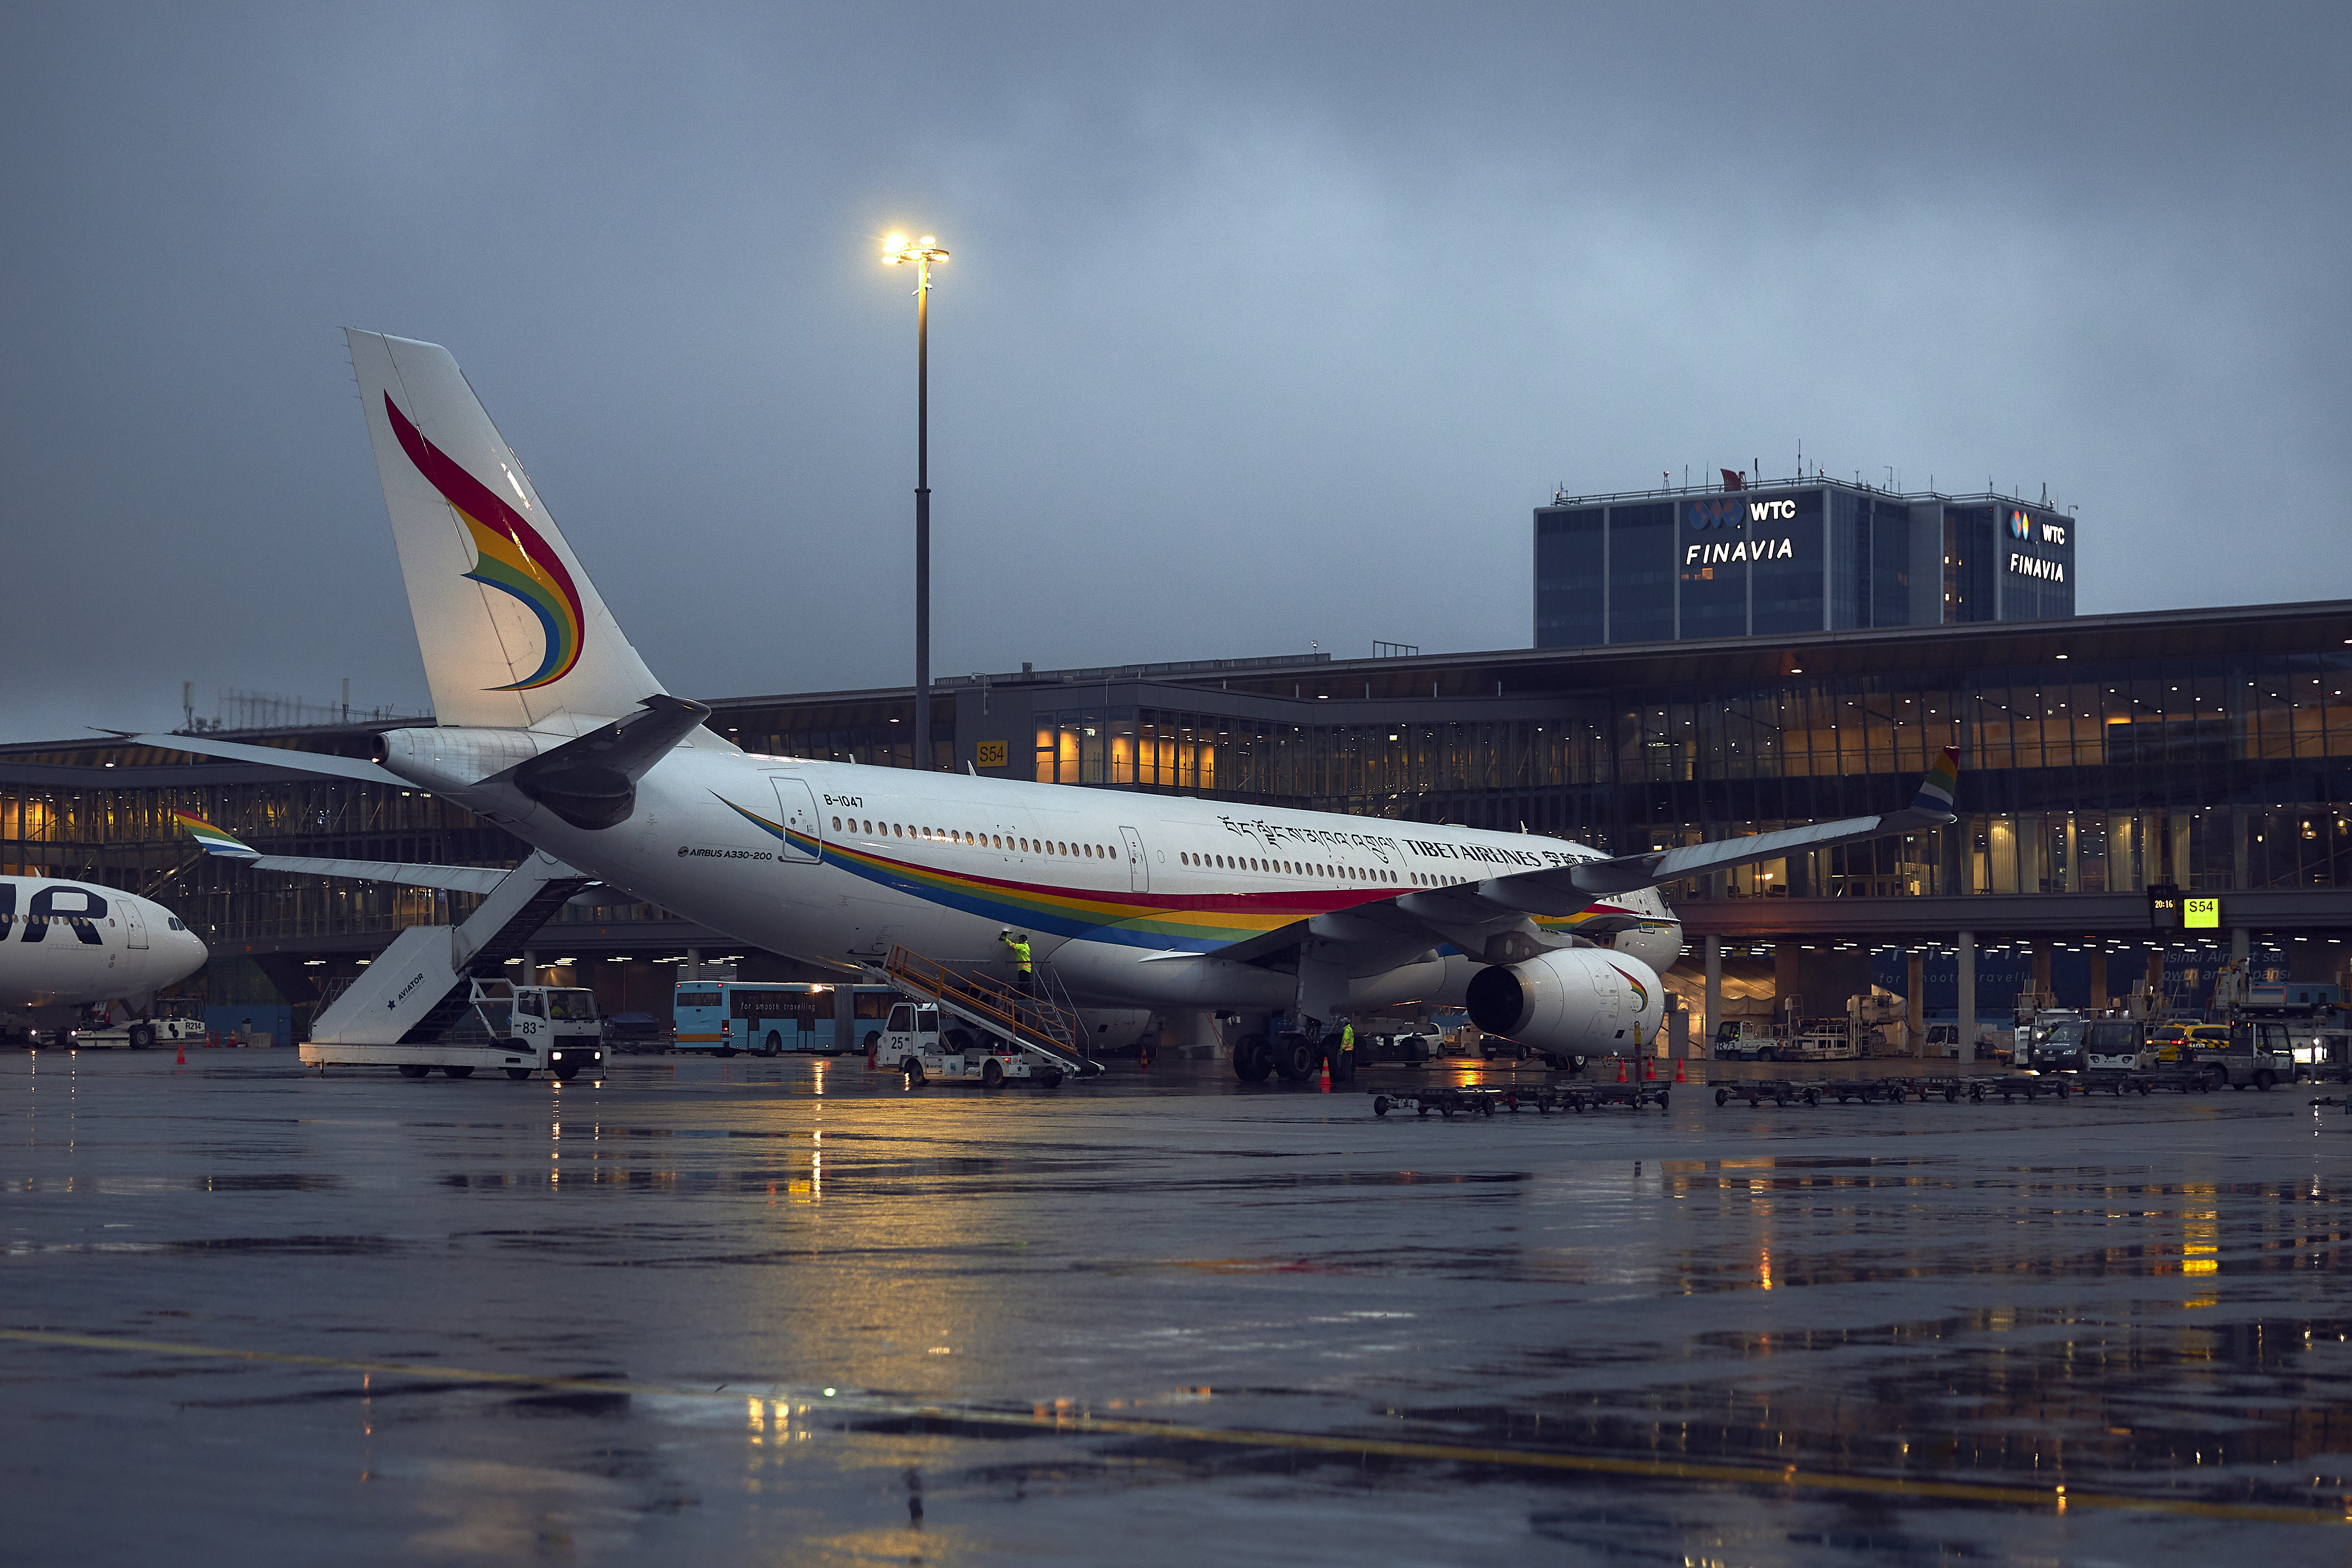 Tibet Airlines A330